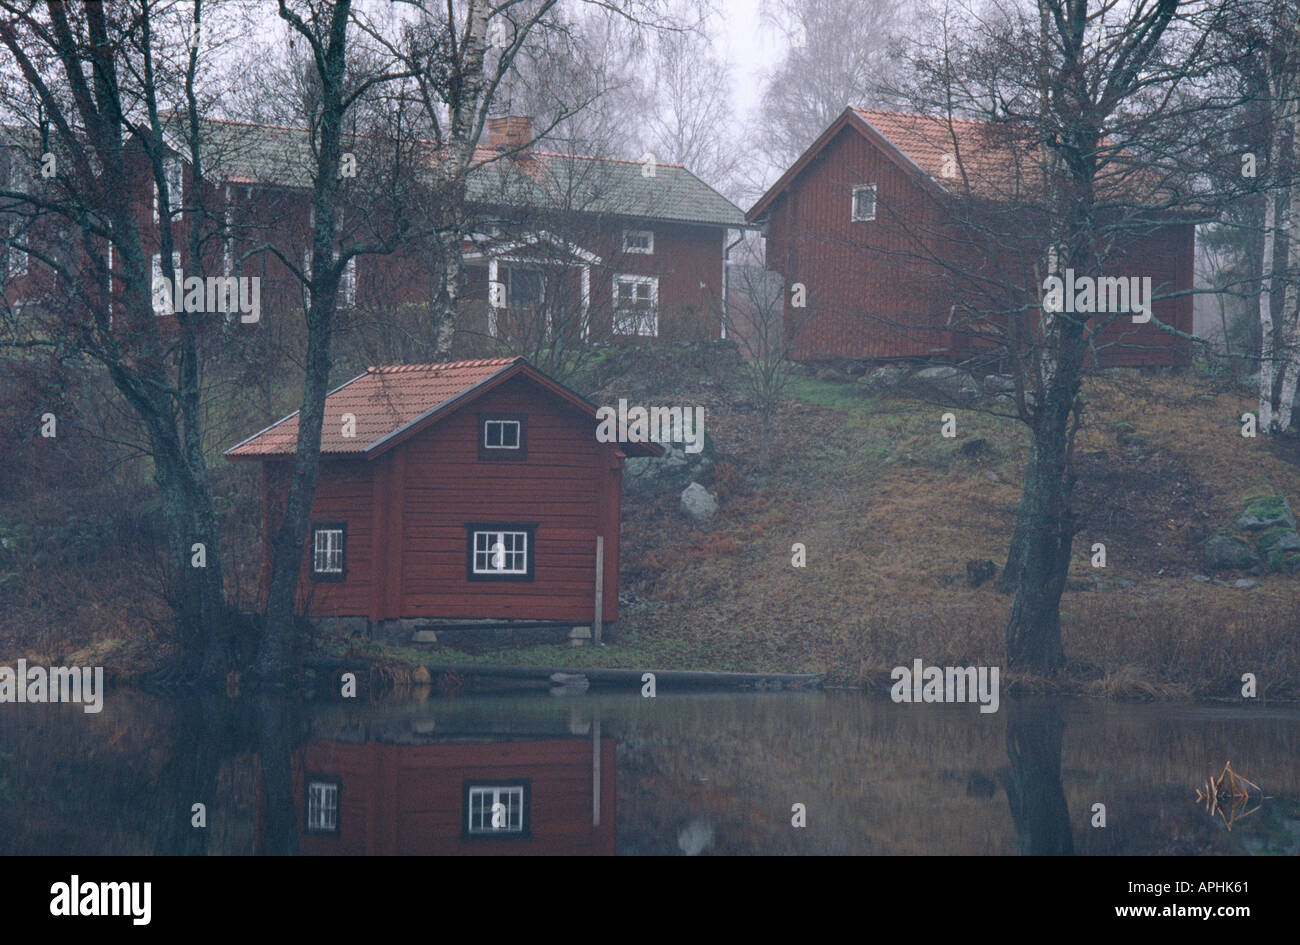 Rural houses - Stock Image